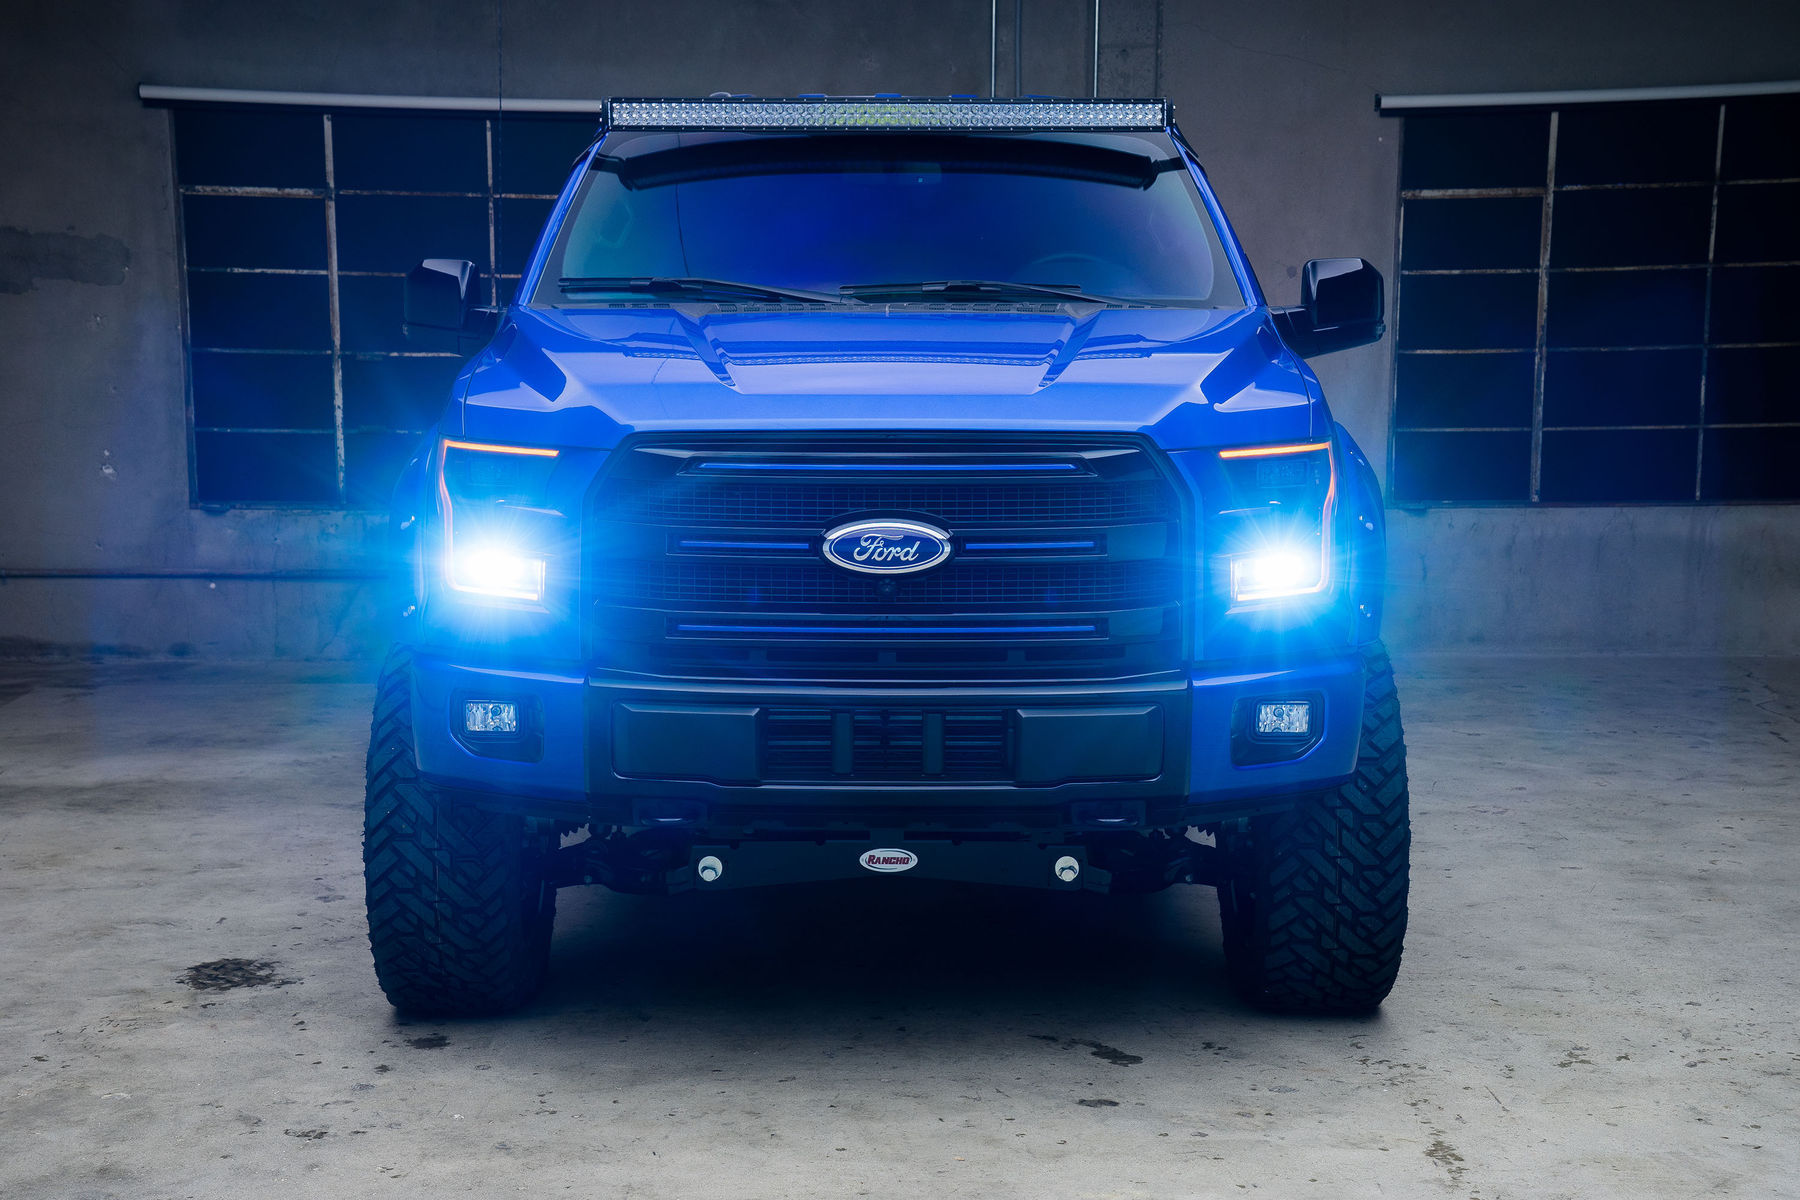 2015 Ford F-150 | '15 Ford F-150 CrewCab by Leer